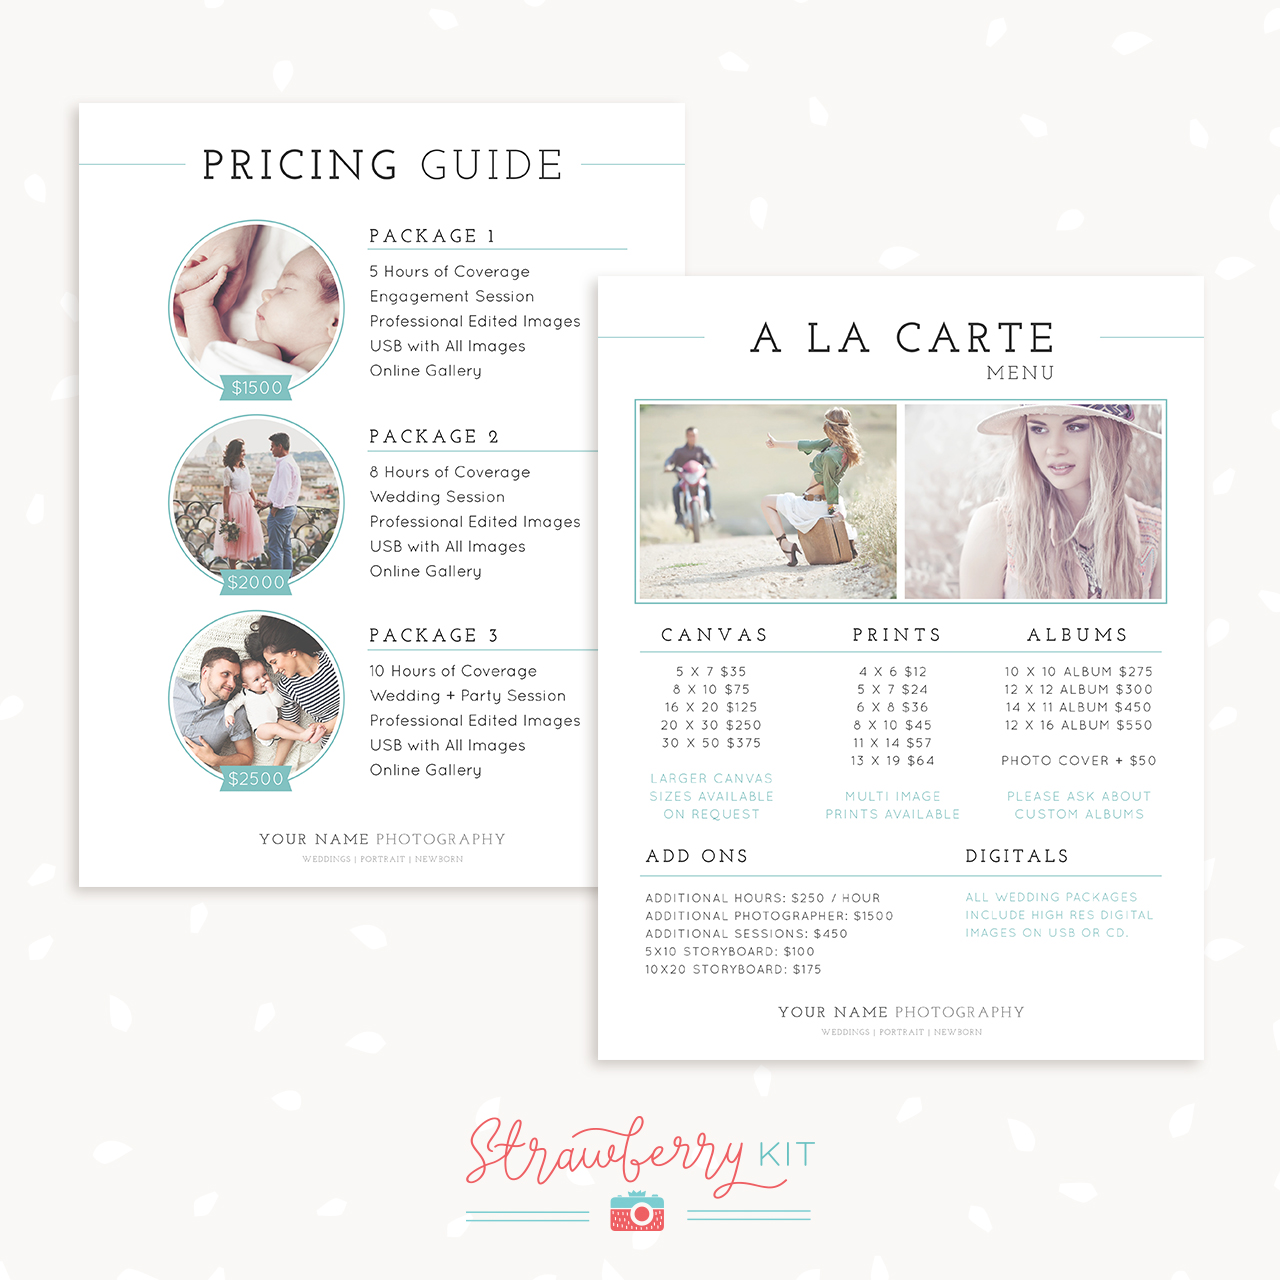 Classical Pricing Guide And A La Carte Menu Template  A La Carte Menu Template